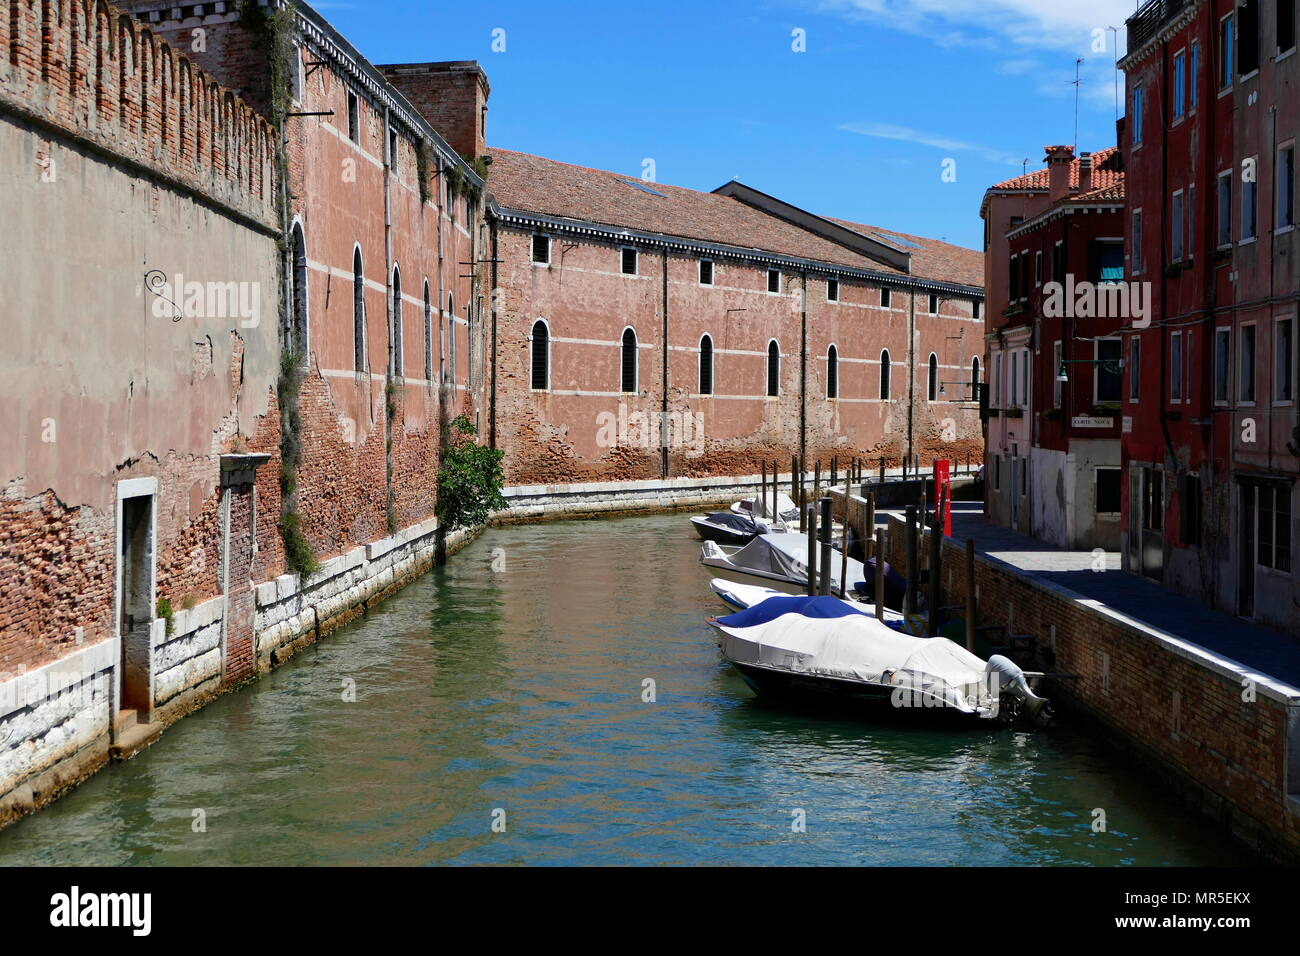 The Venetian Arsenale; a complex of former shipyards and armouries clustered together in the city of Venice in northern Italy dating from 12th century AD - Stock Image